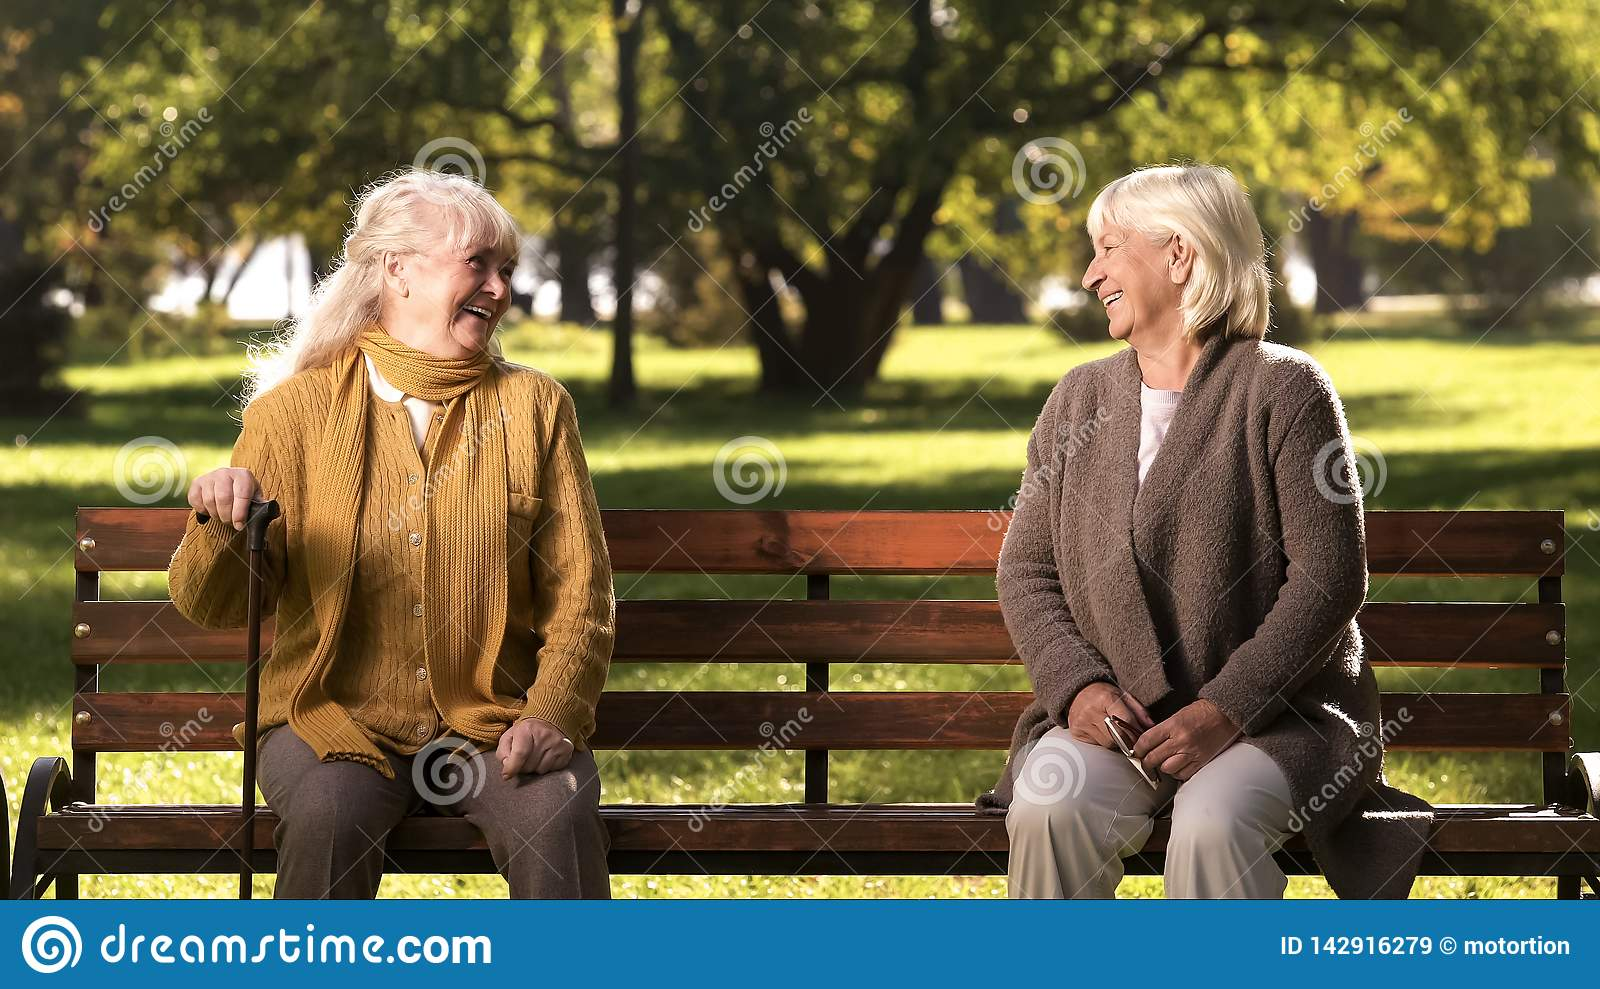 Two elderly ladies laughing and talking, sitting on bench in park, old friends